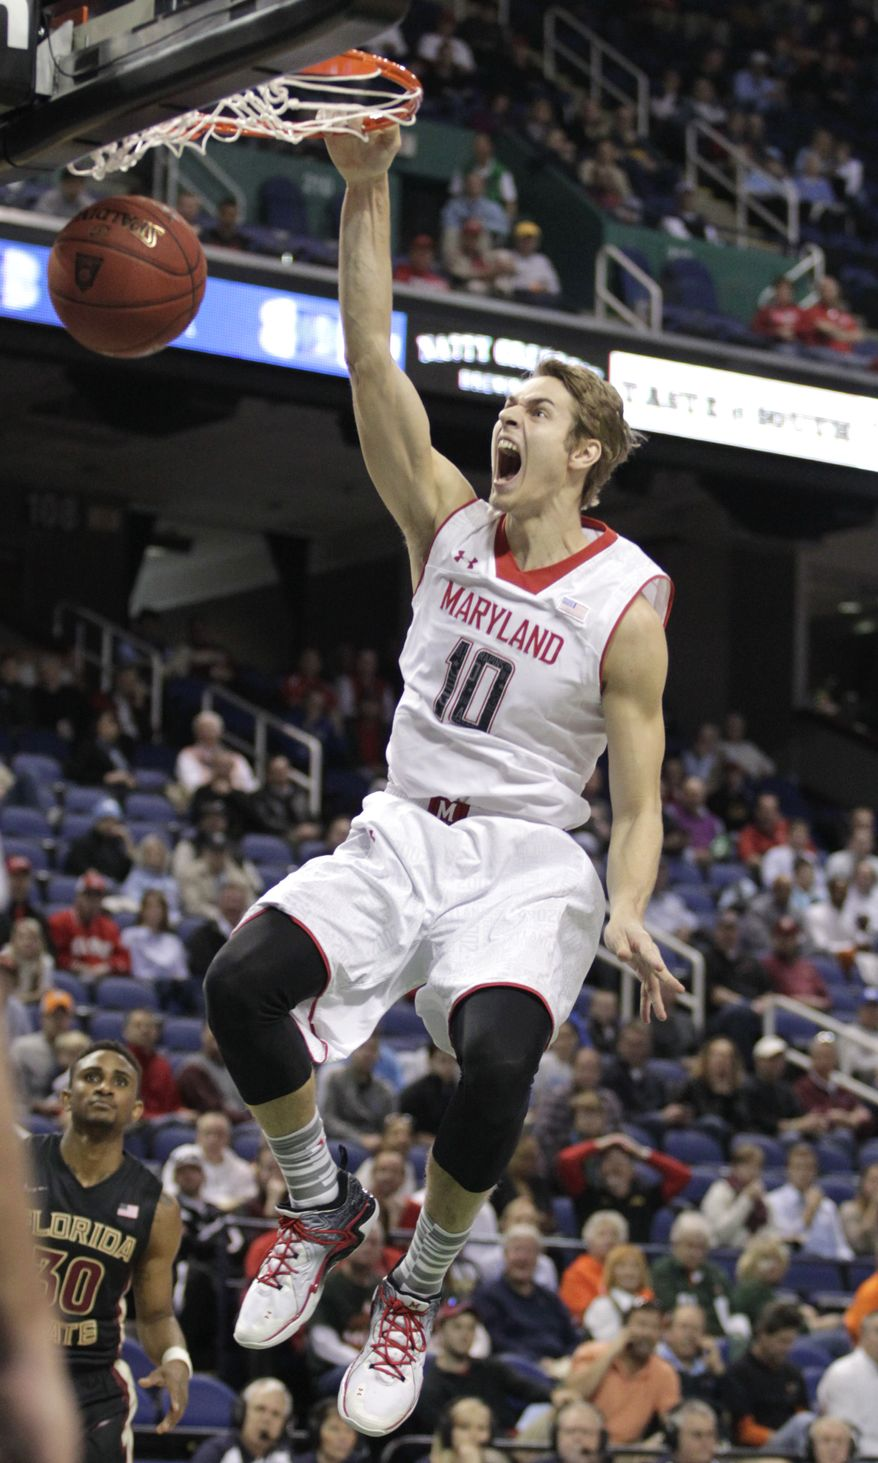 Maryland's Jake Layman (10) dunks against Florida State during the first half of a second round NCAA college basketball game at the Atlantic Coast Conference tournament in Greensboro, N.C., Thursday, March 13, 2014. (AP Photo/Bob Leverone)